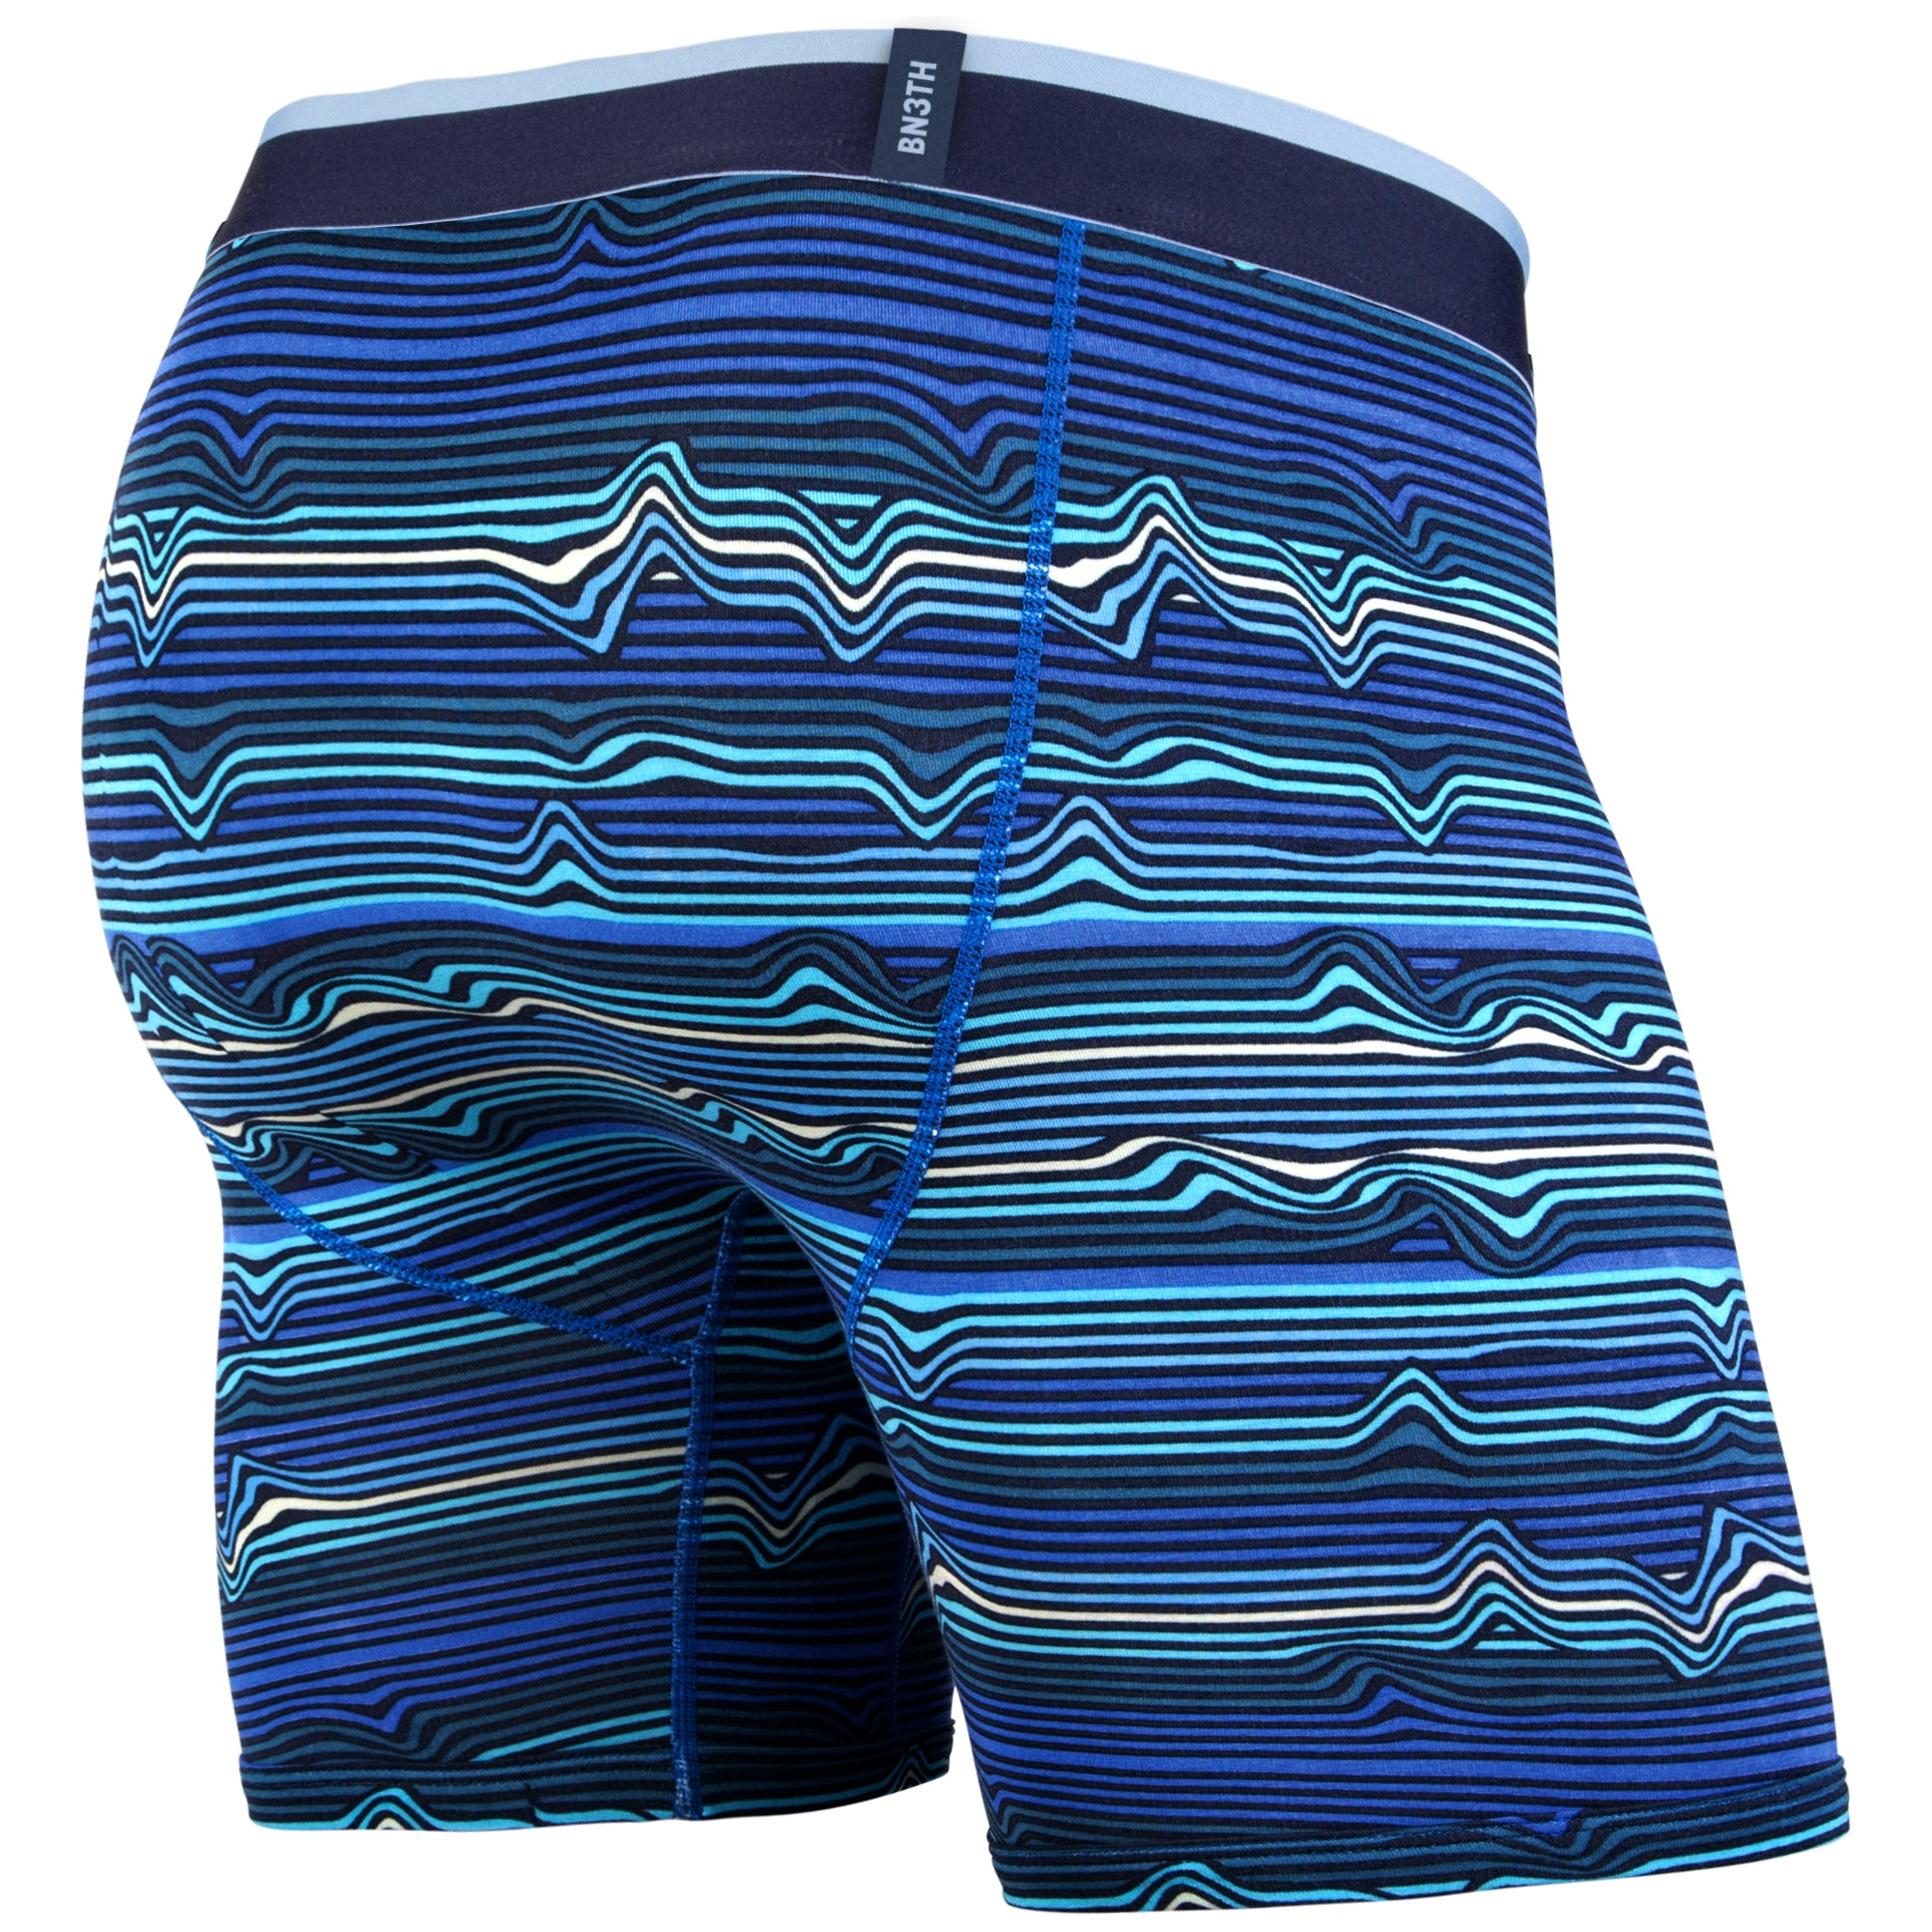 Classic Boxer Brief - Warp Stripe Blue